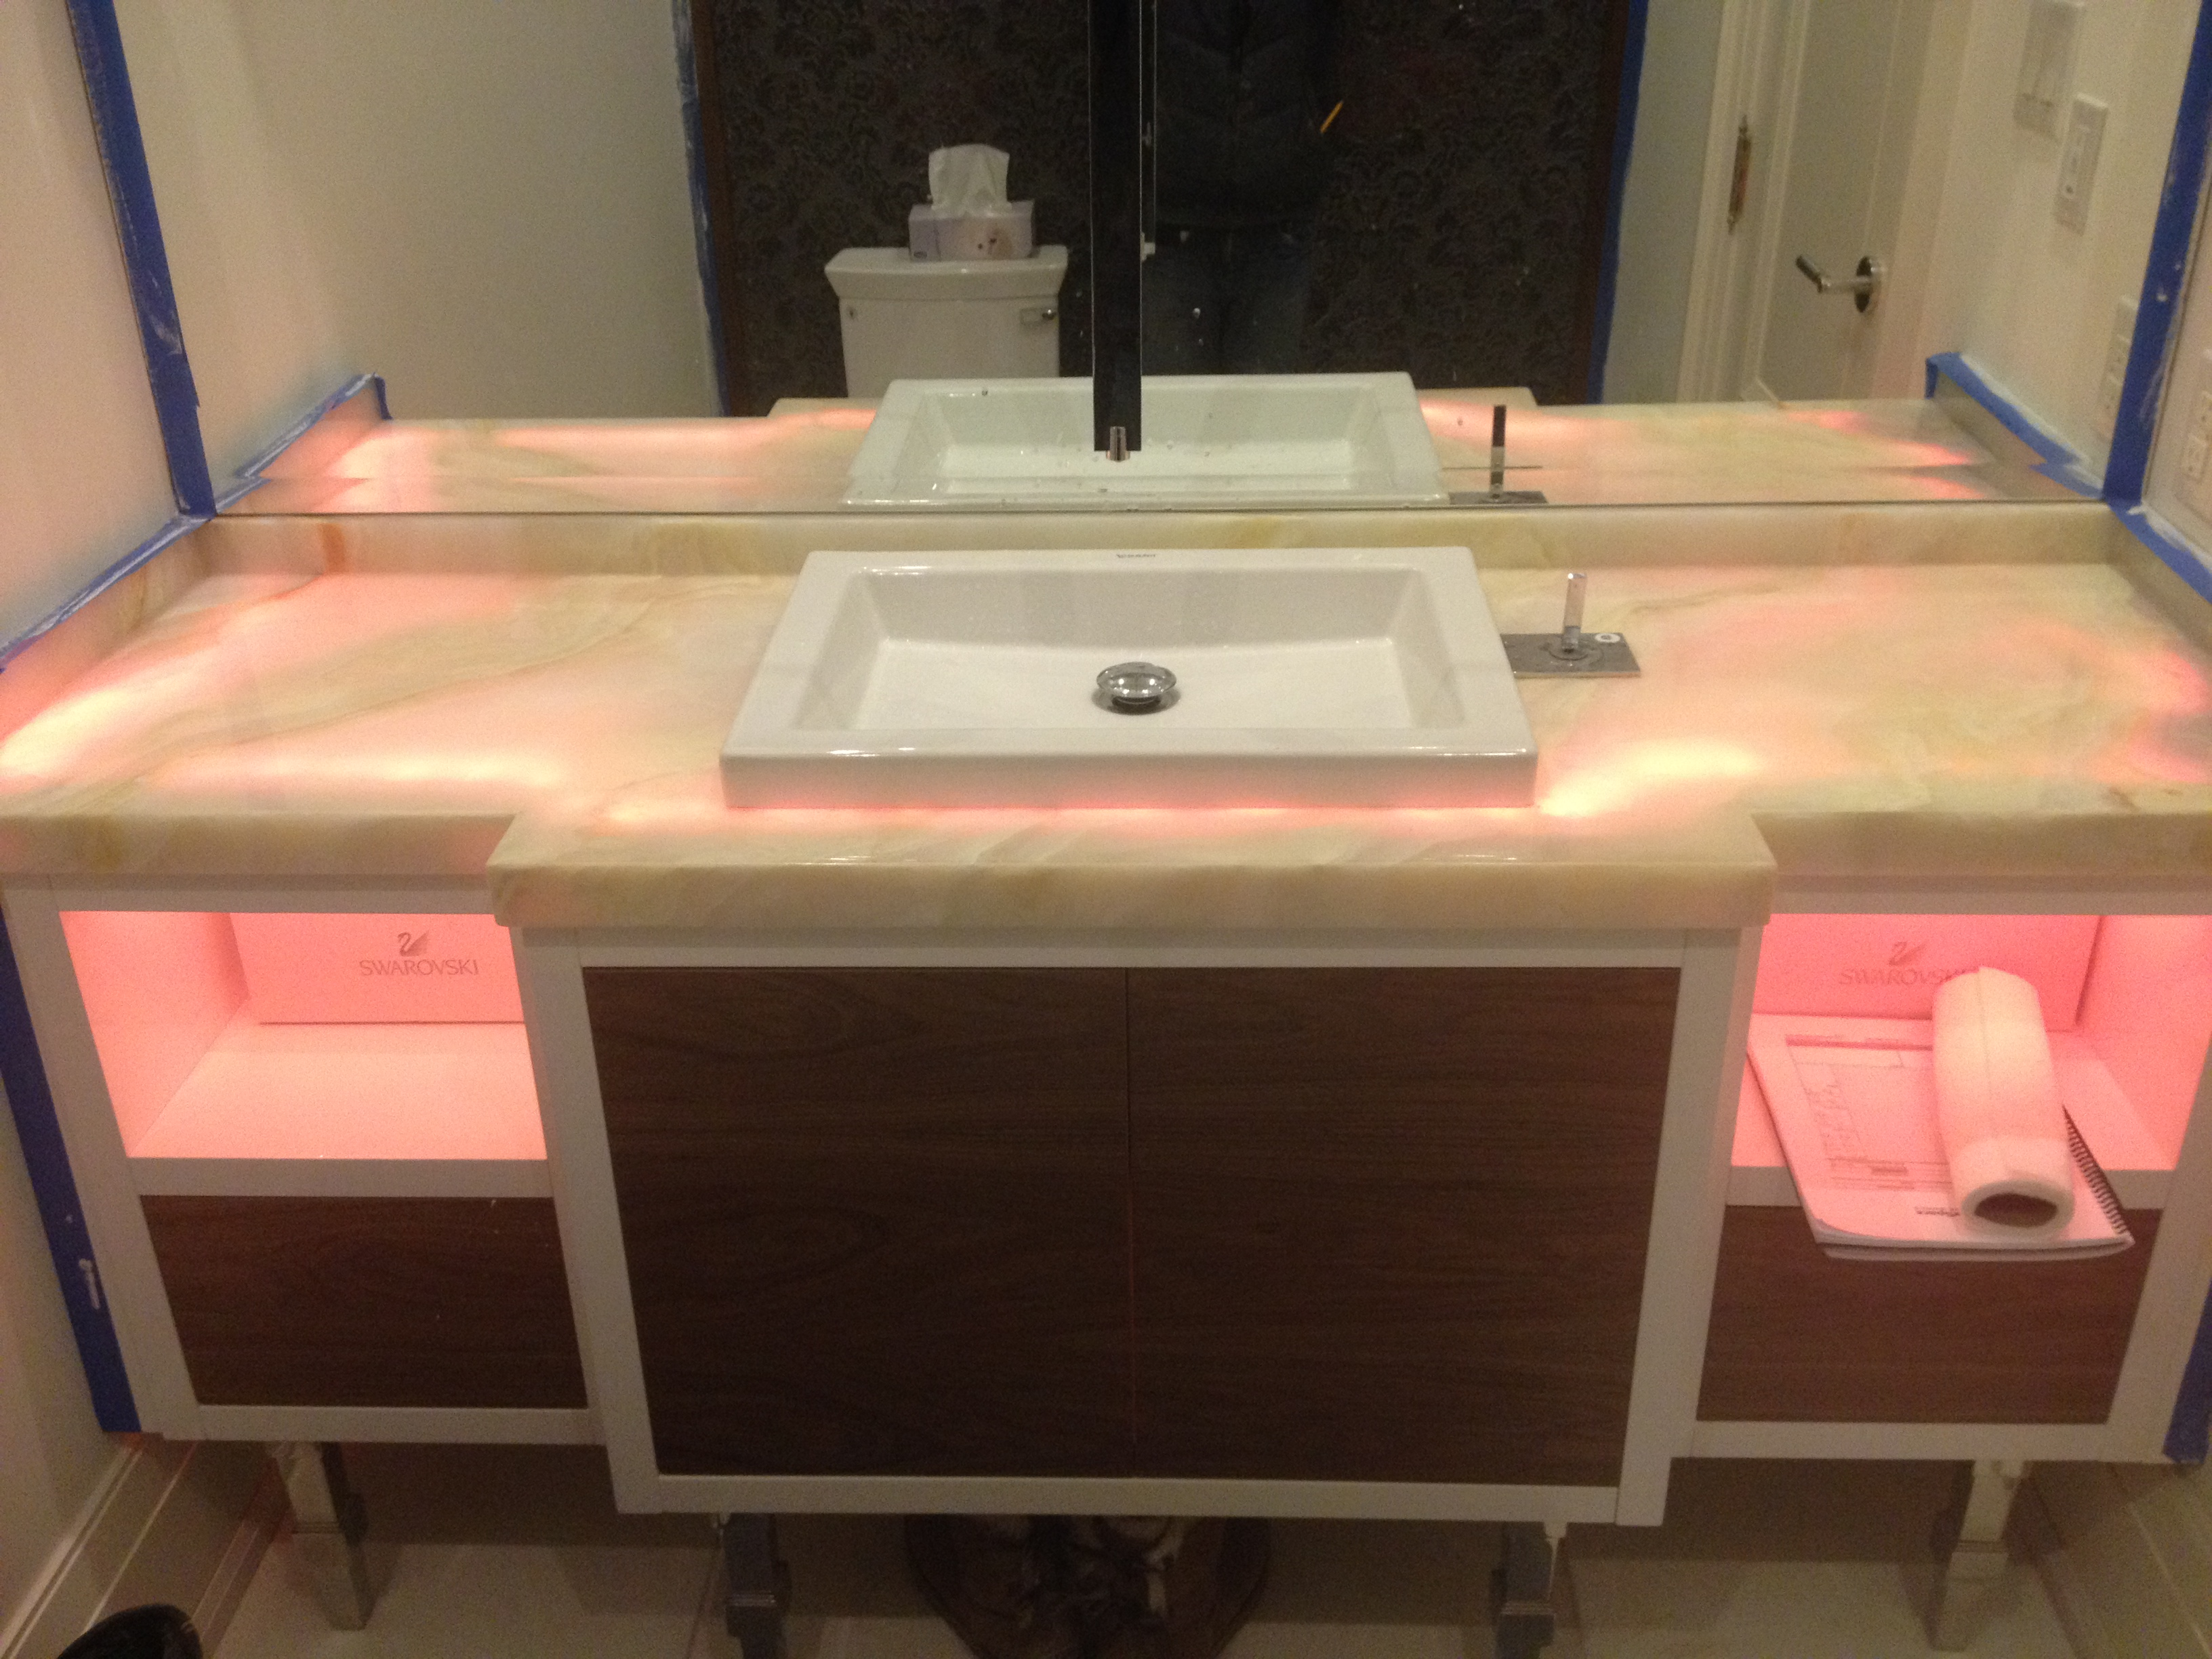 Best Stone Materials For Bathroom Vanity Tops Maxspace Stone Works